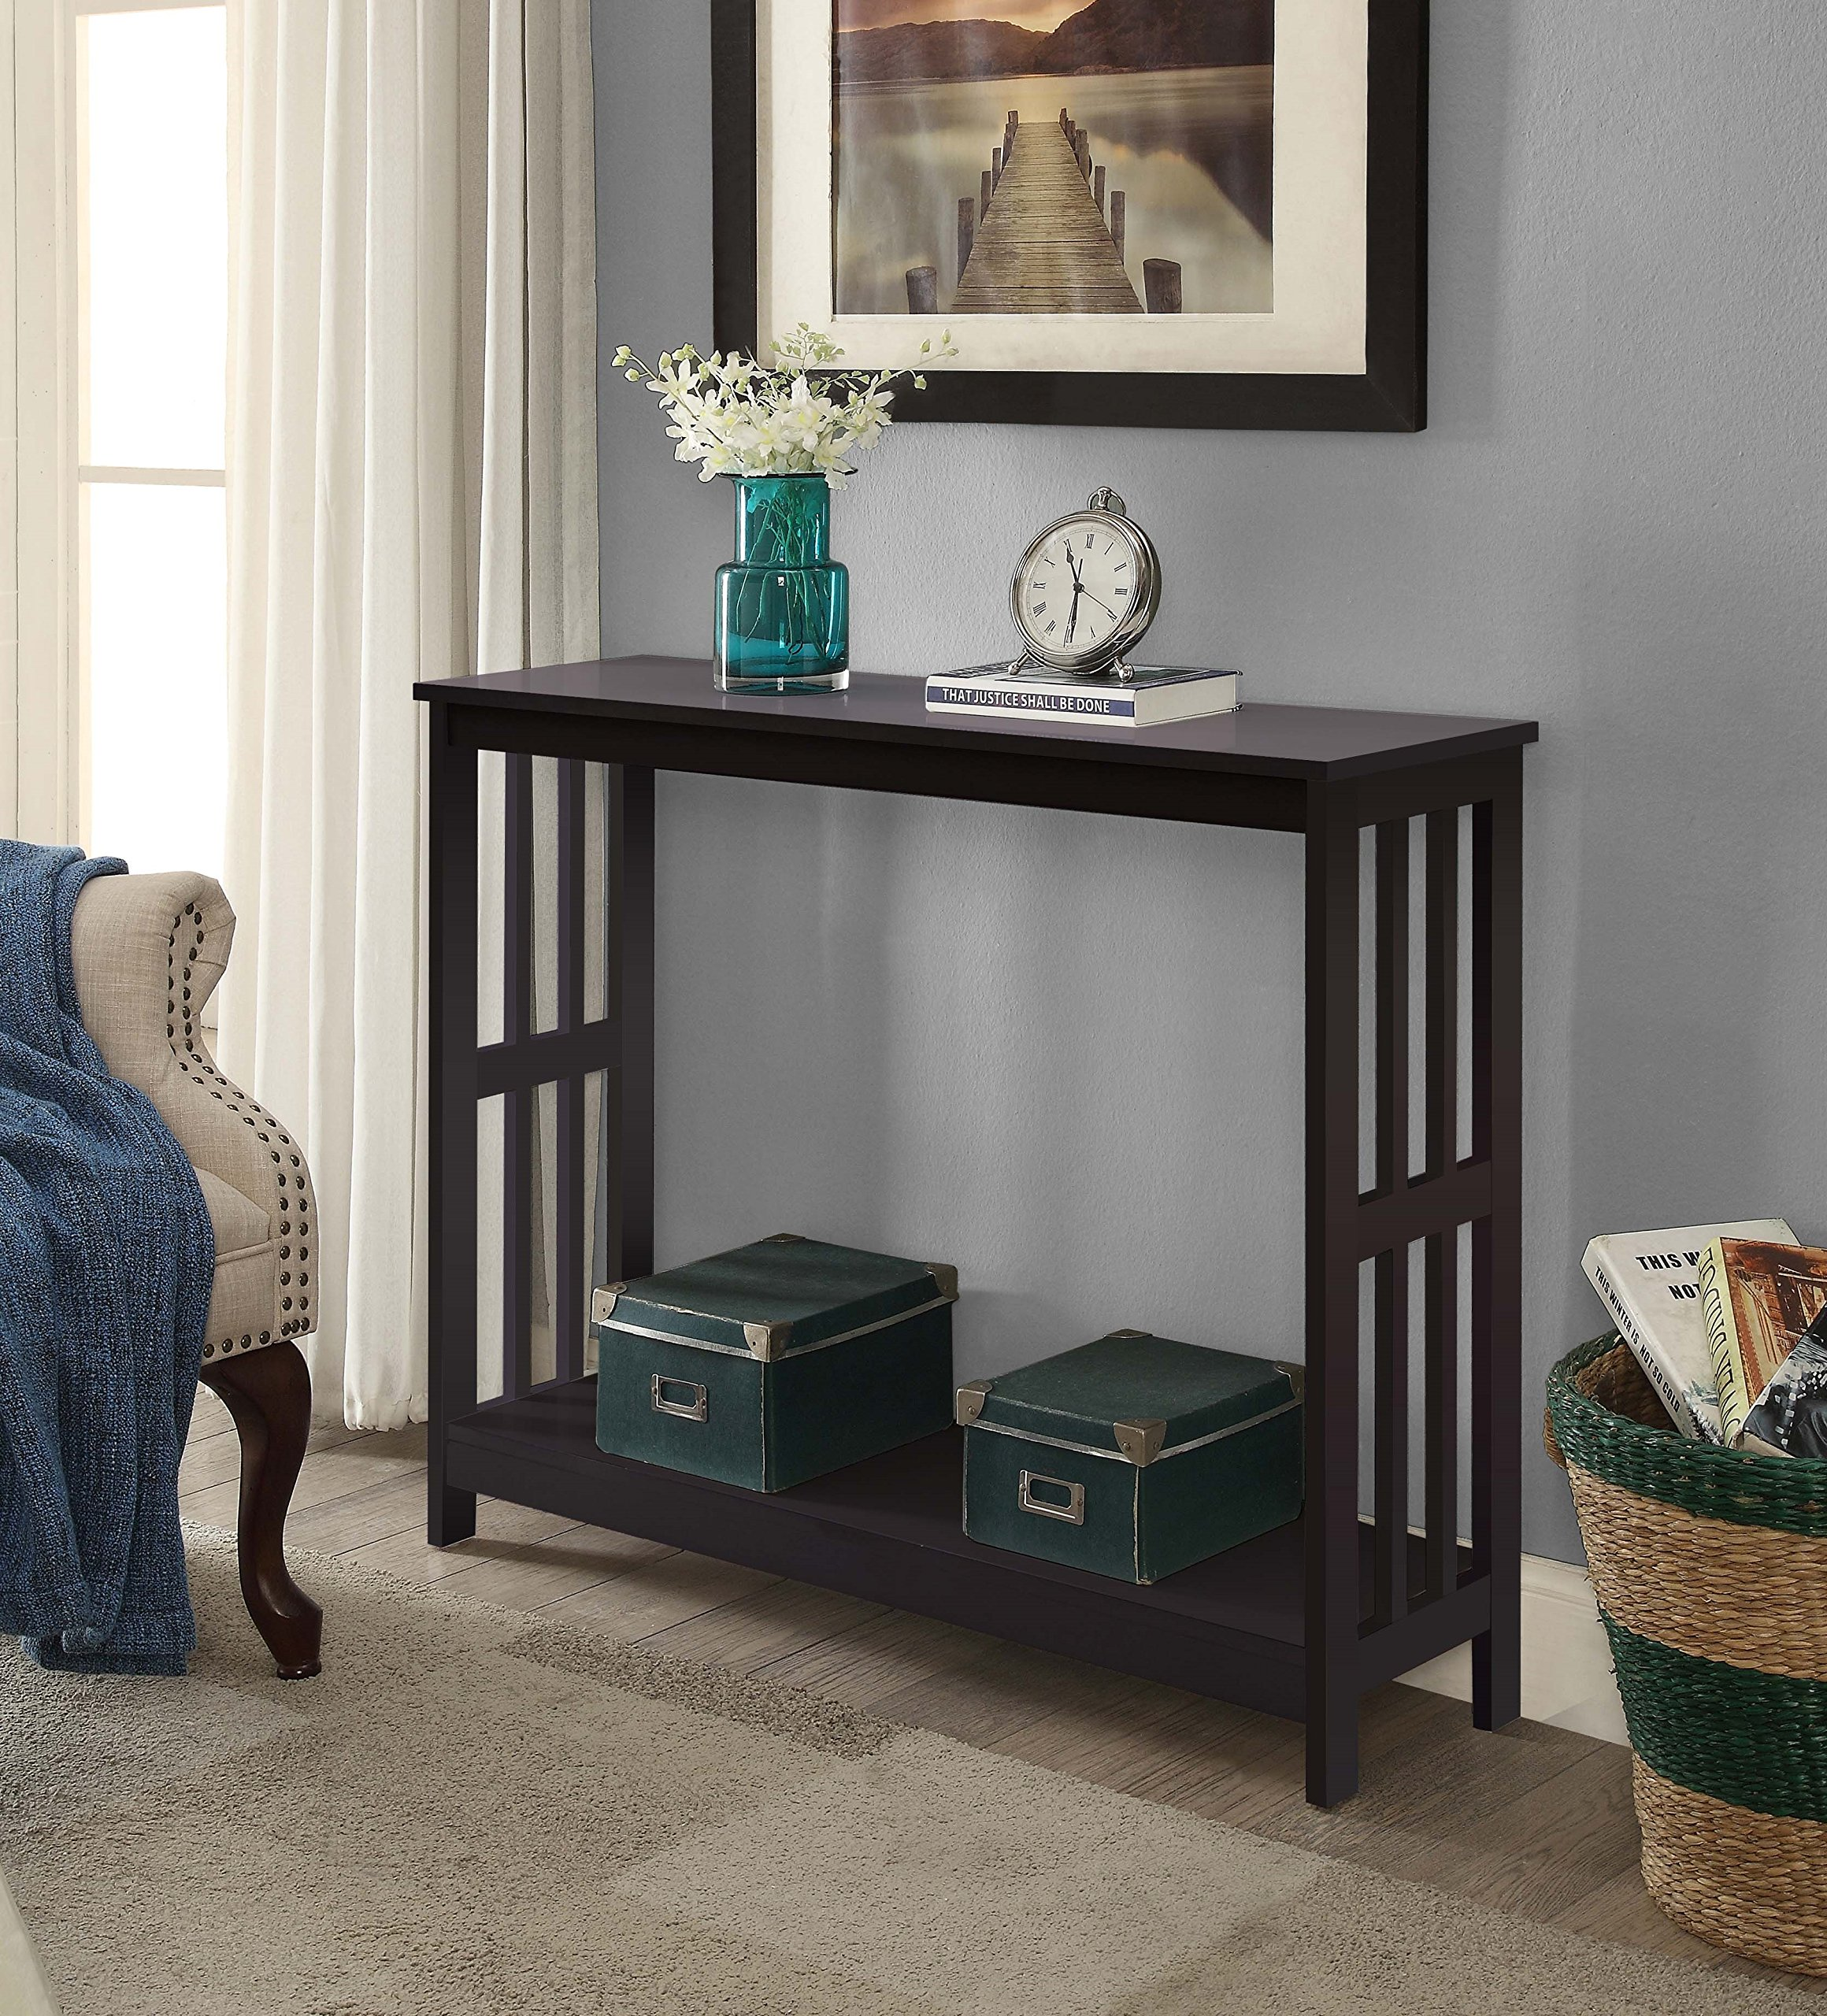 Espresso Finish 2-Tier Occasional Console Sofa Table Bookshelf by eHomeProducts